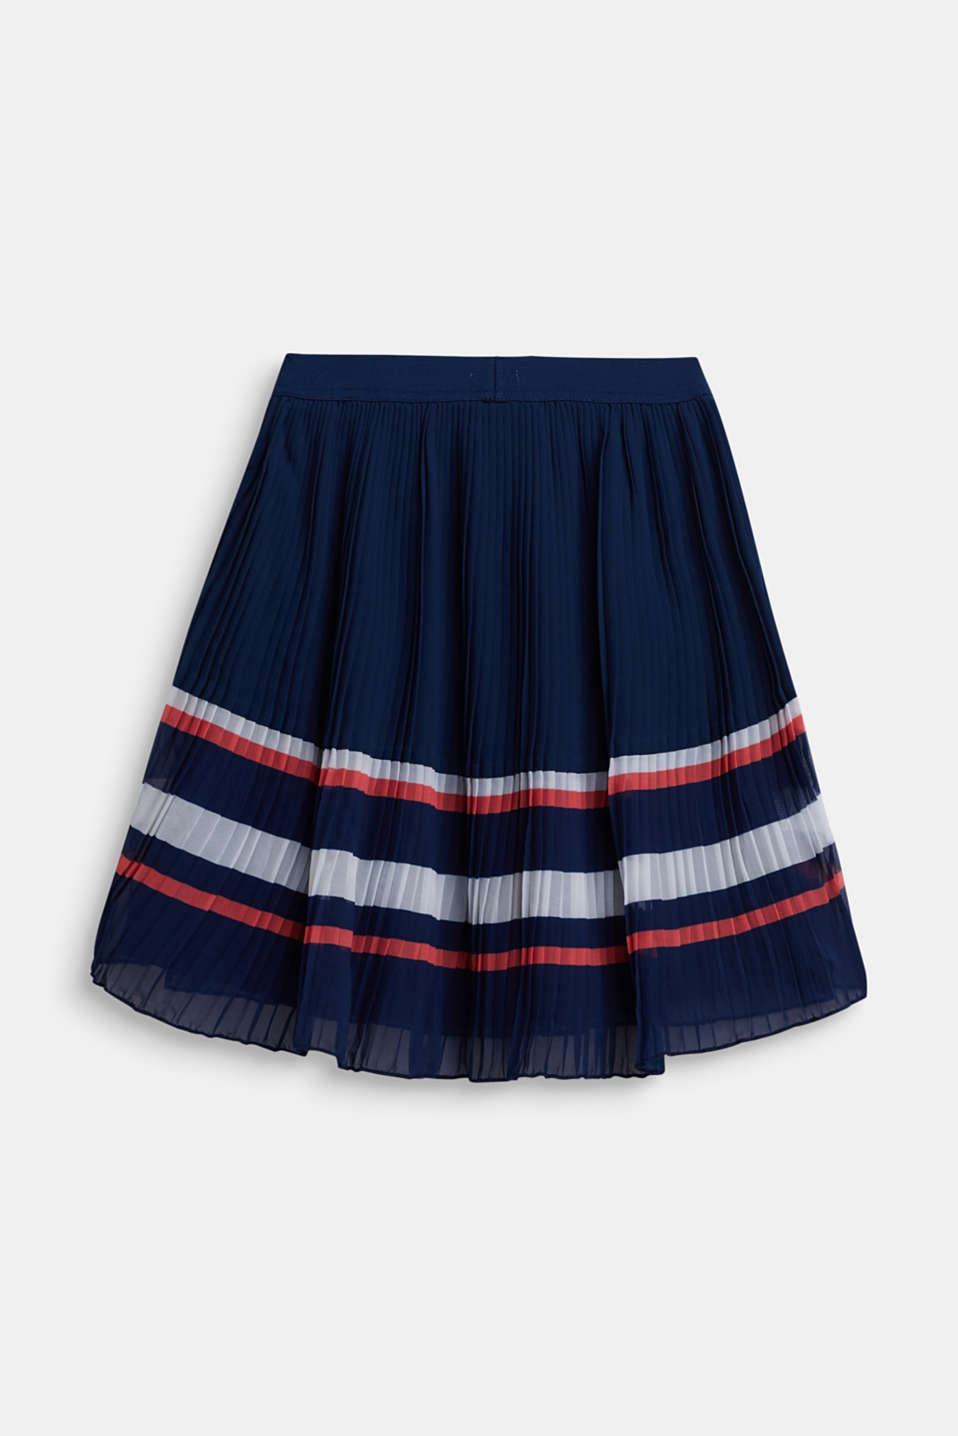 Plissé skirt in chiffon, LCMARINE BLUE, detail image number 1